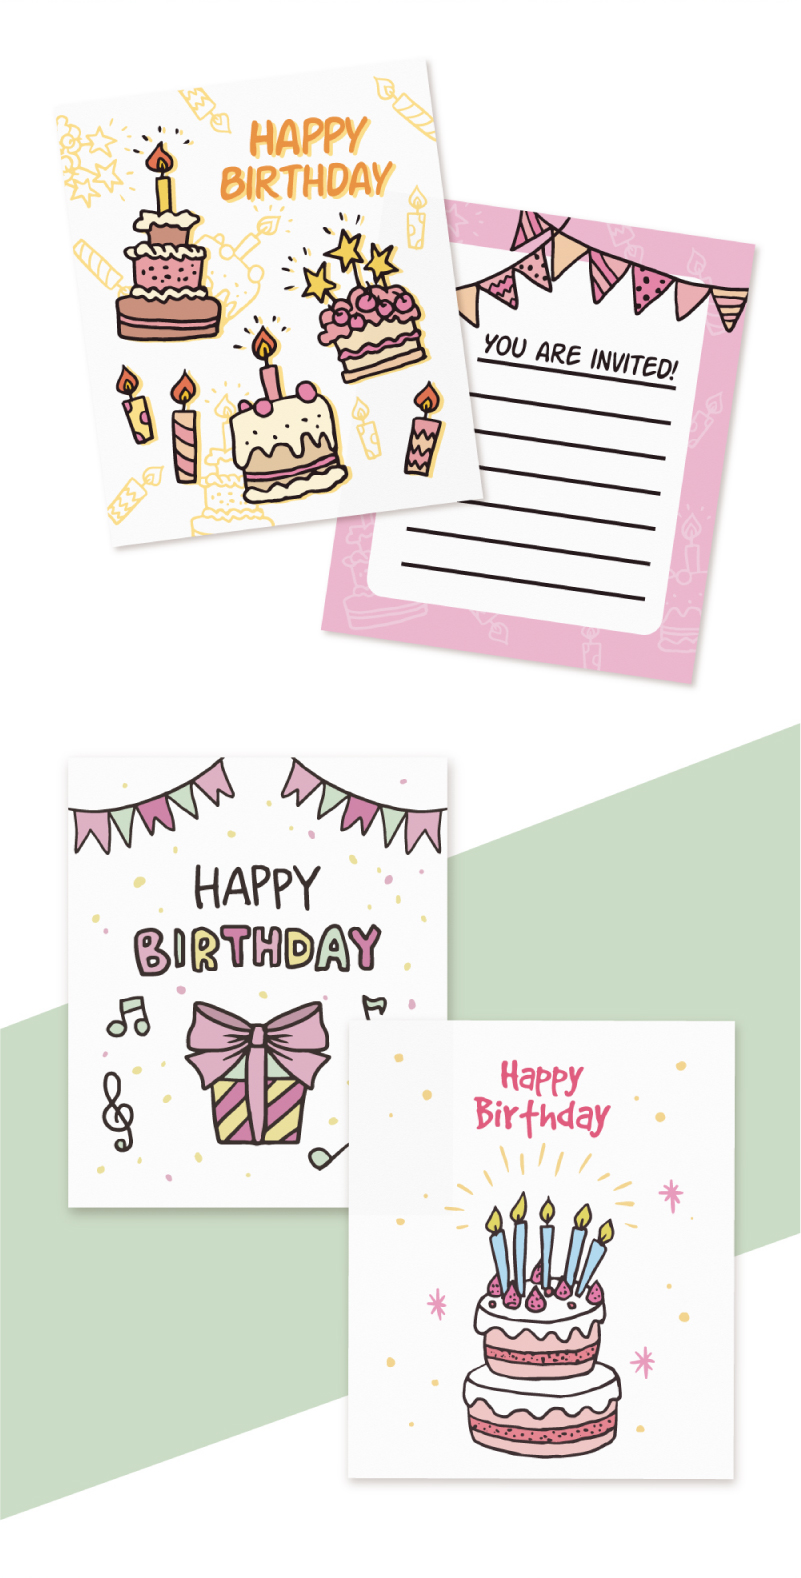 Hand-Drawn Birthday Cards Collection